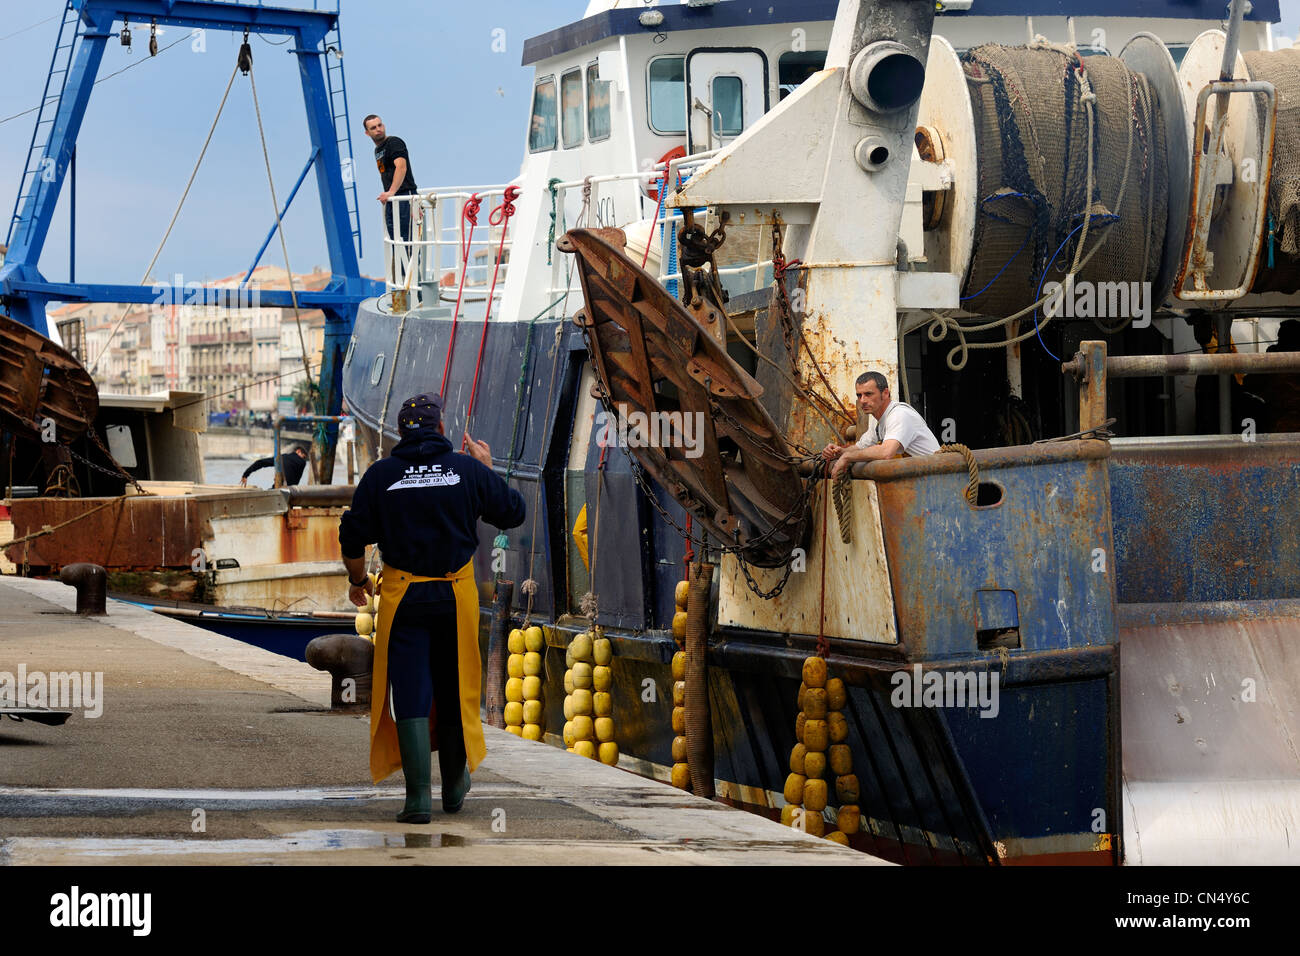 France, Herault, Sete, docking activity on the port of the fish auction market - Stock Image